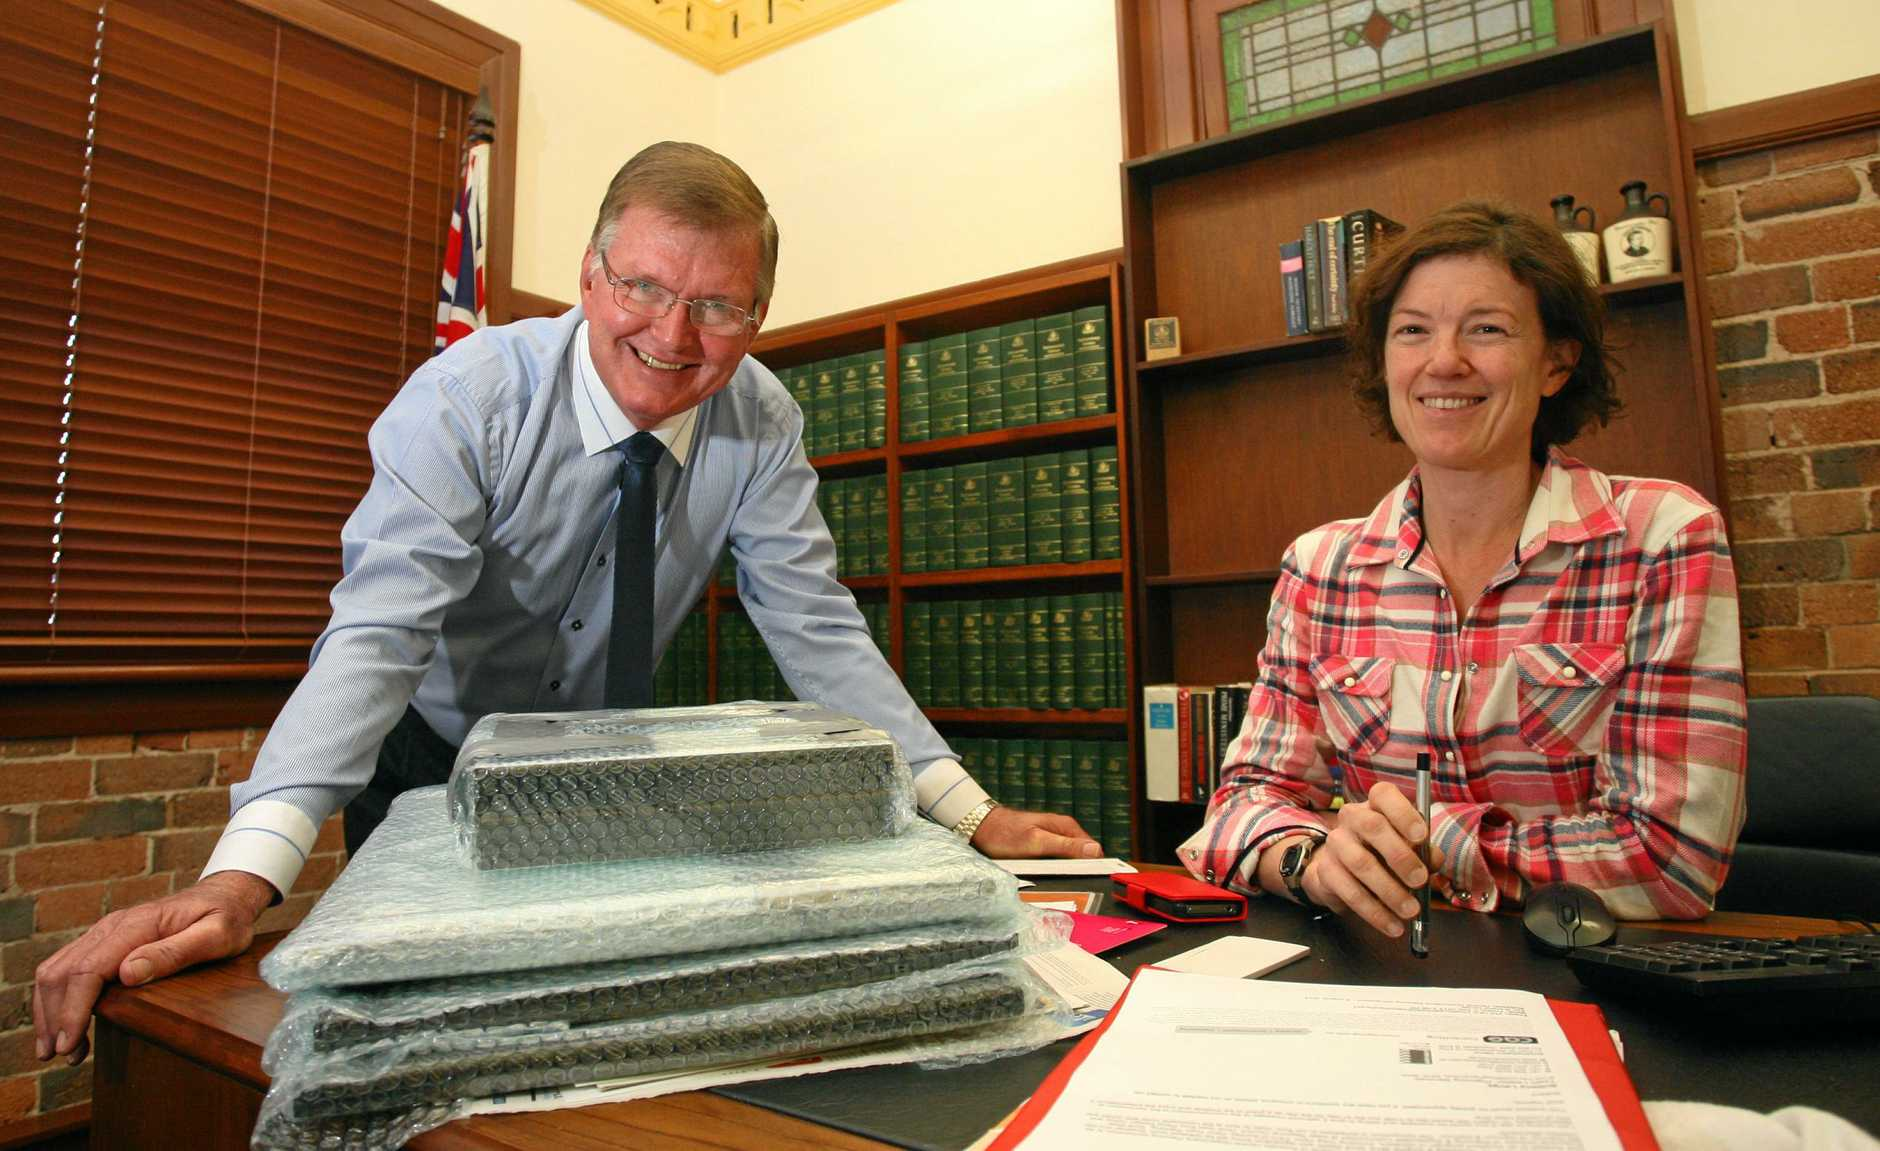 Barry Large and Kirsten Livermore in Kirsten's office as she packs up after Parliament was disolved in 2013.